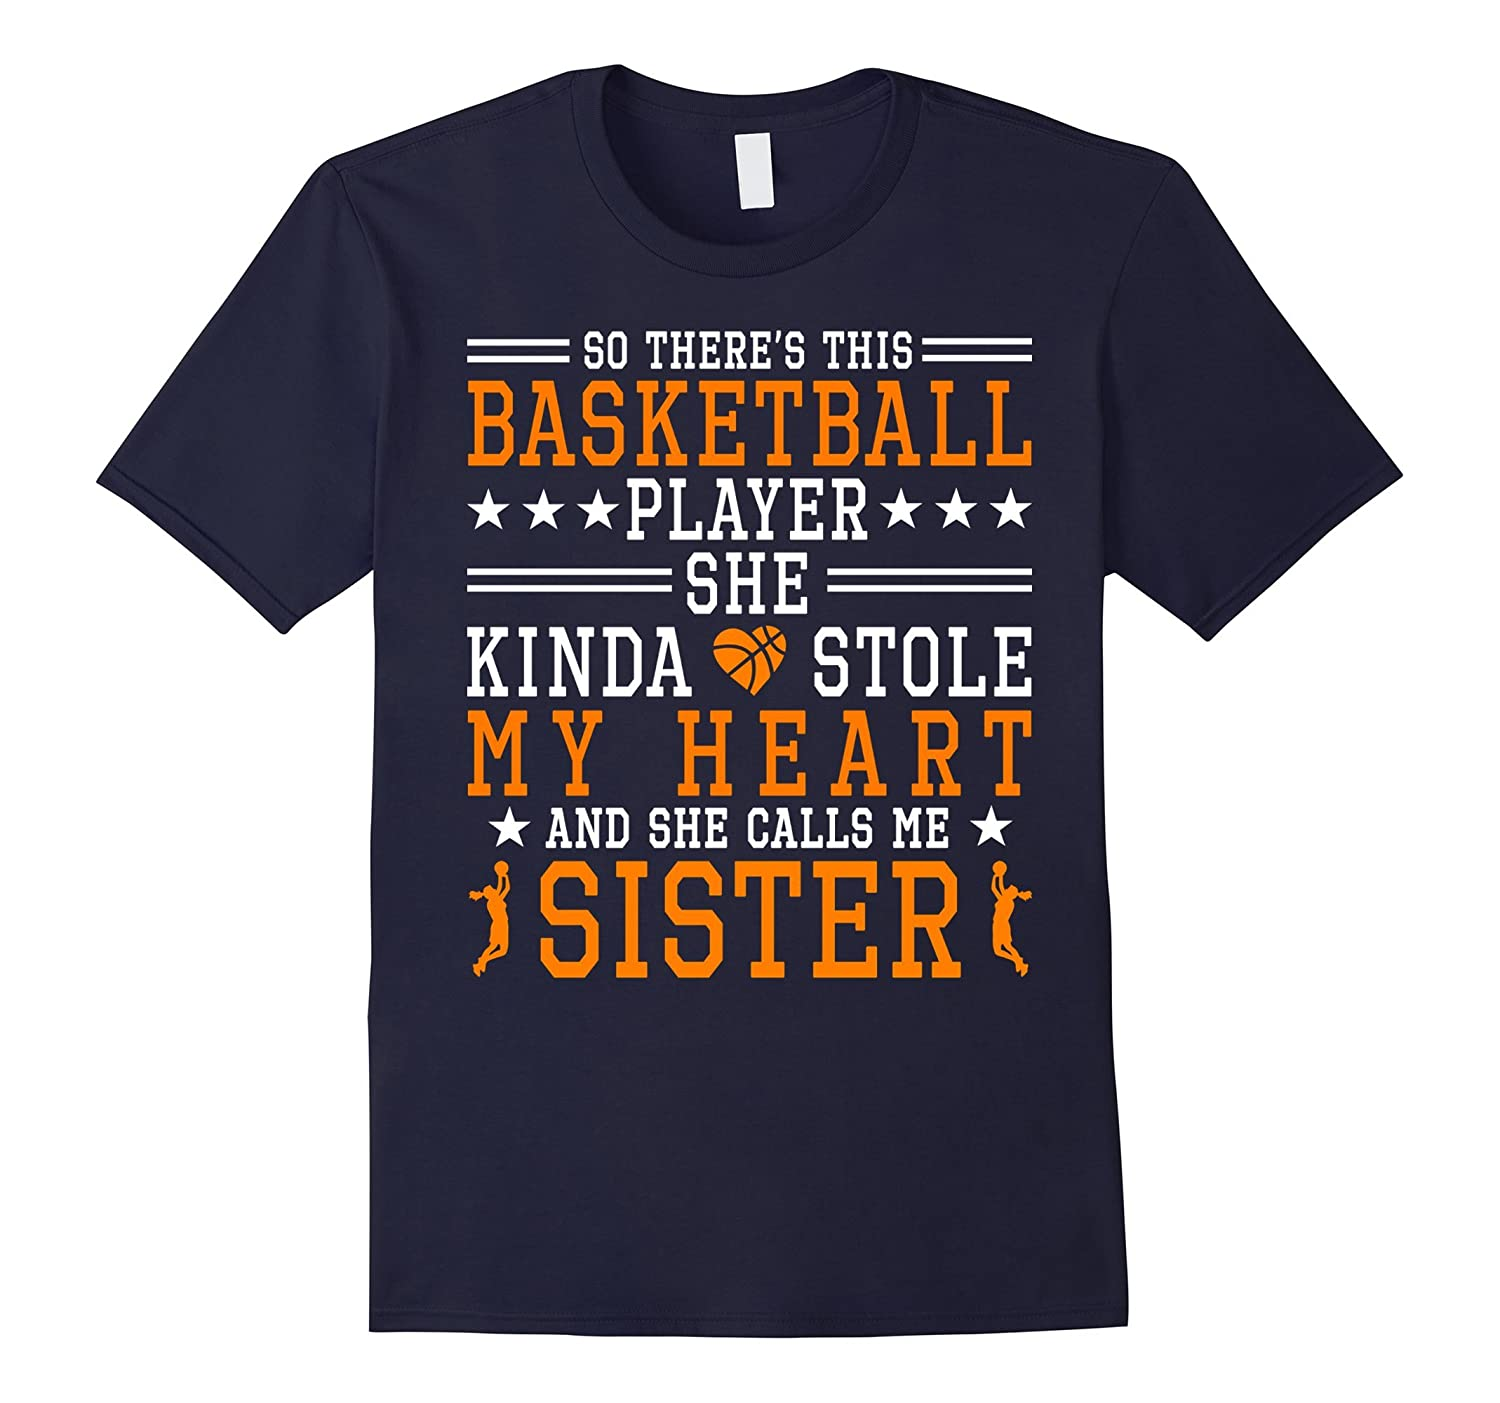 Basketball Player Stole My Heart She Calls Me Sister Shirt